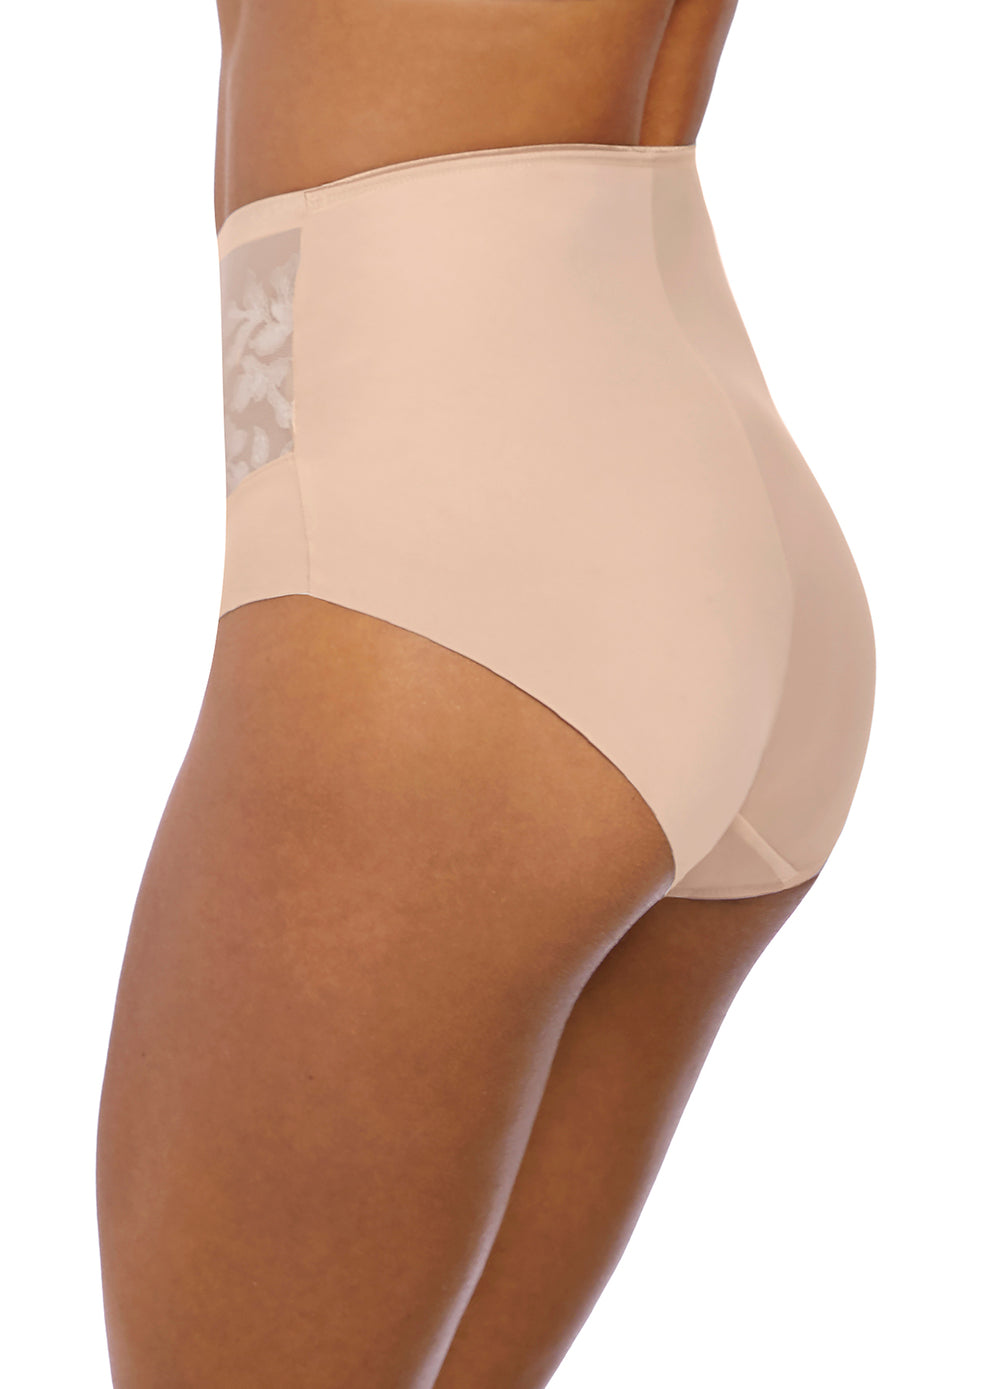 FL2988NAE Illusion High Waist Brief |NATURAL BEIGE|